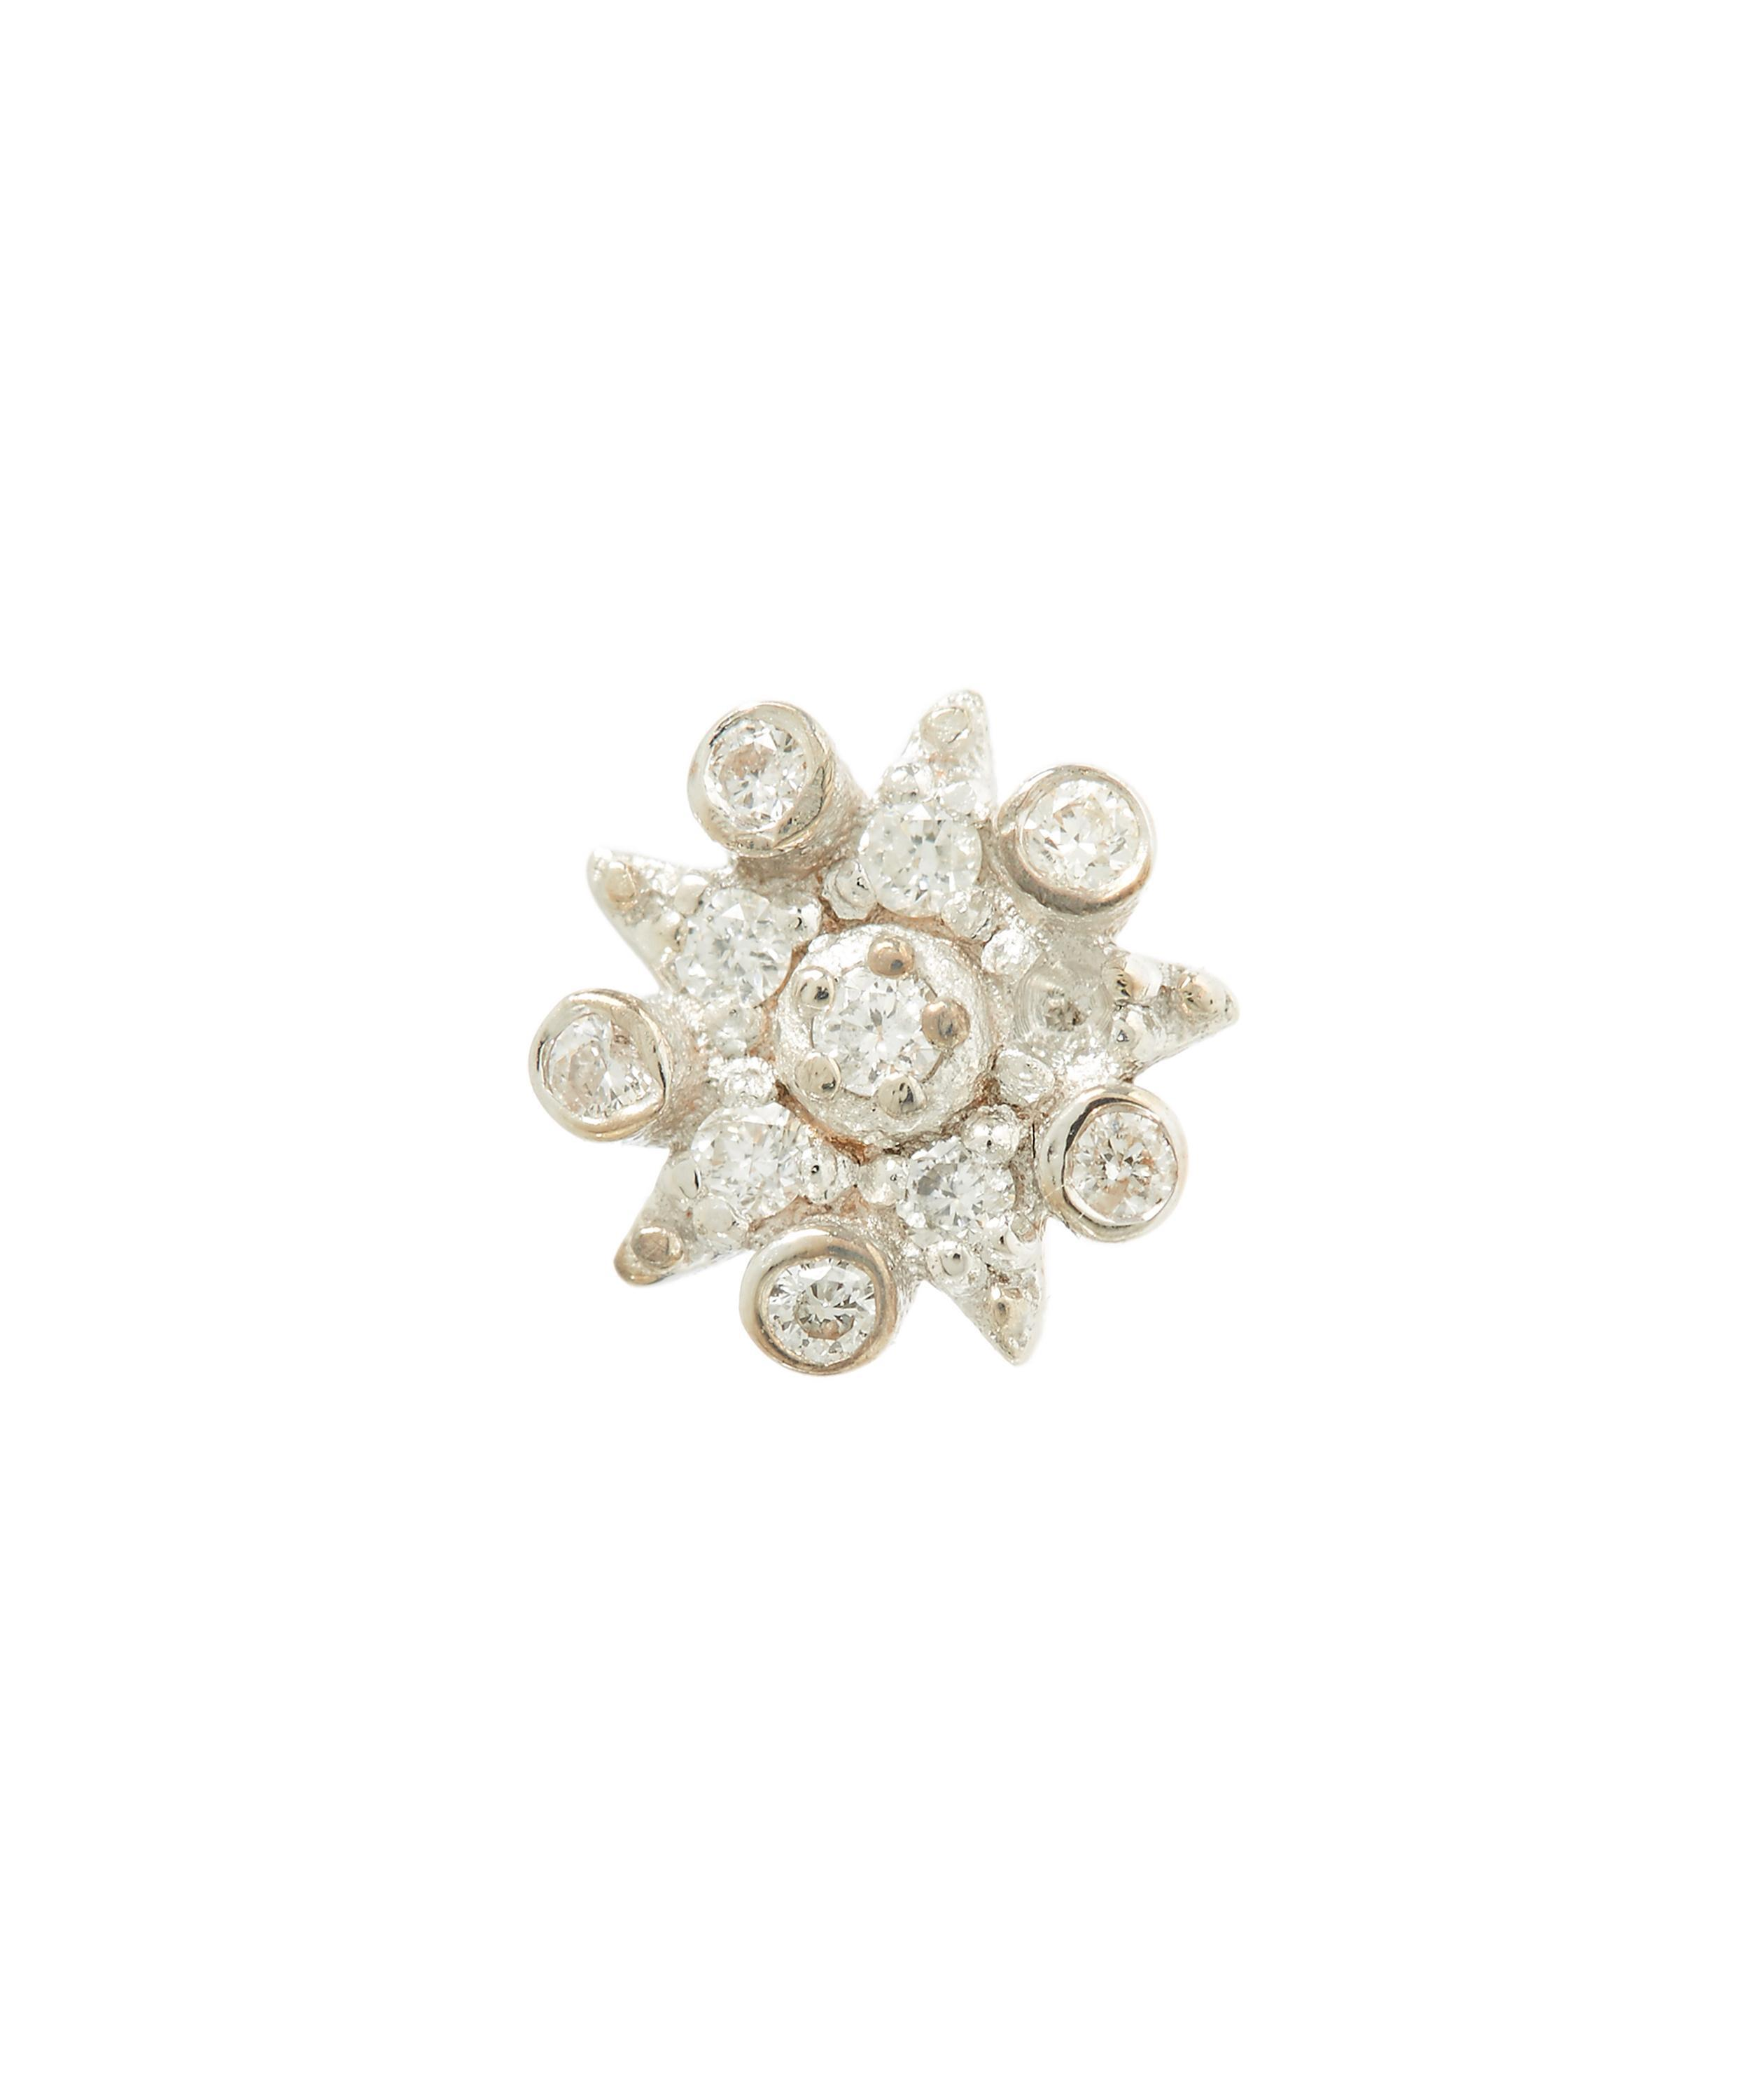 Kismet by Milka Eclectic Champagne & White Diamond Large Star Stud Earring H7wI0Es